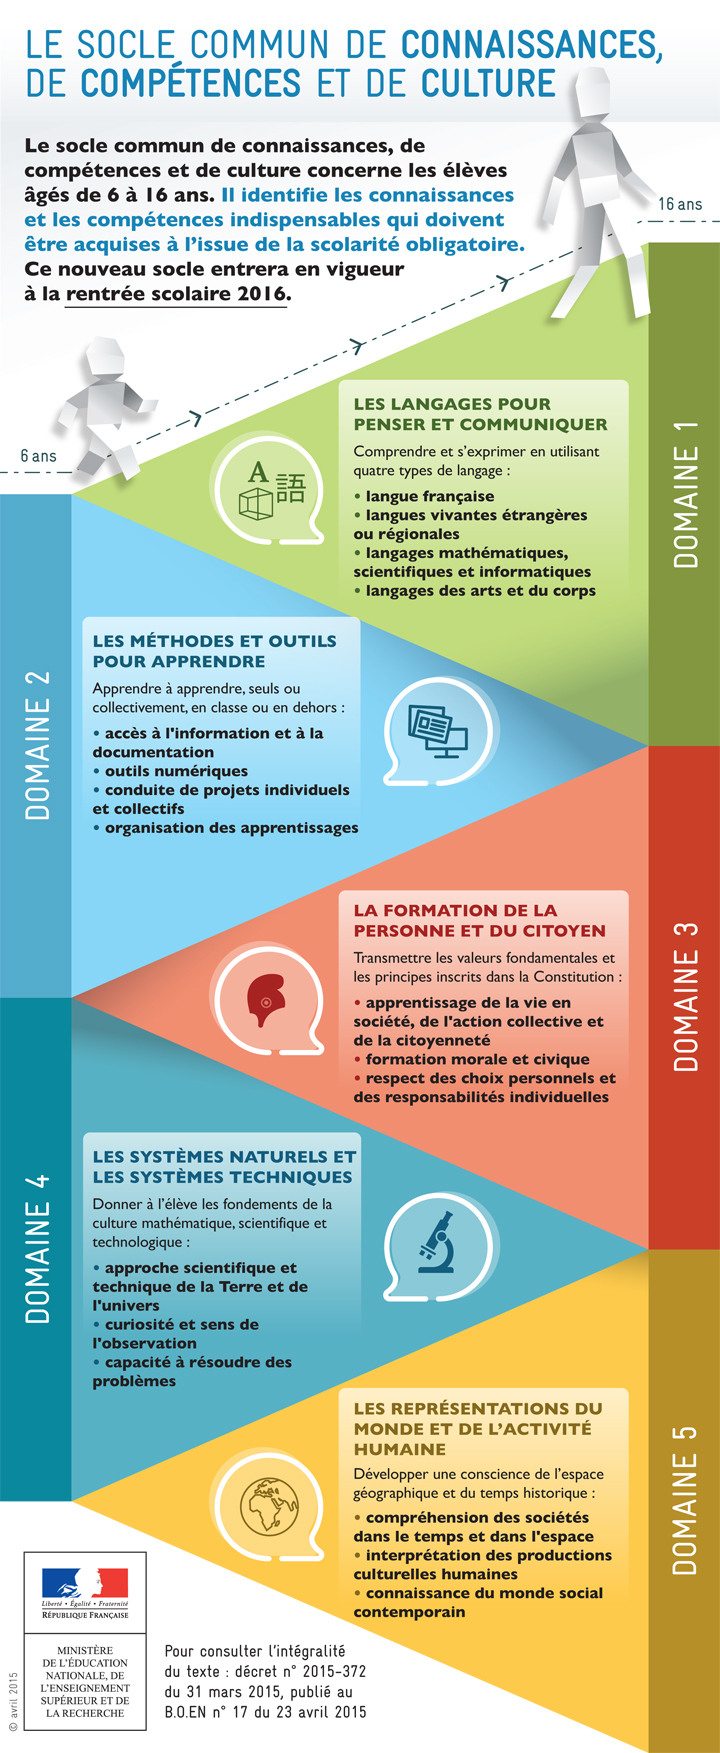 https://cache.media.education.gouv.fr/image/04_-_avril/70/4/2015_soclecommun_infographie-1_415704.jpg